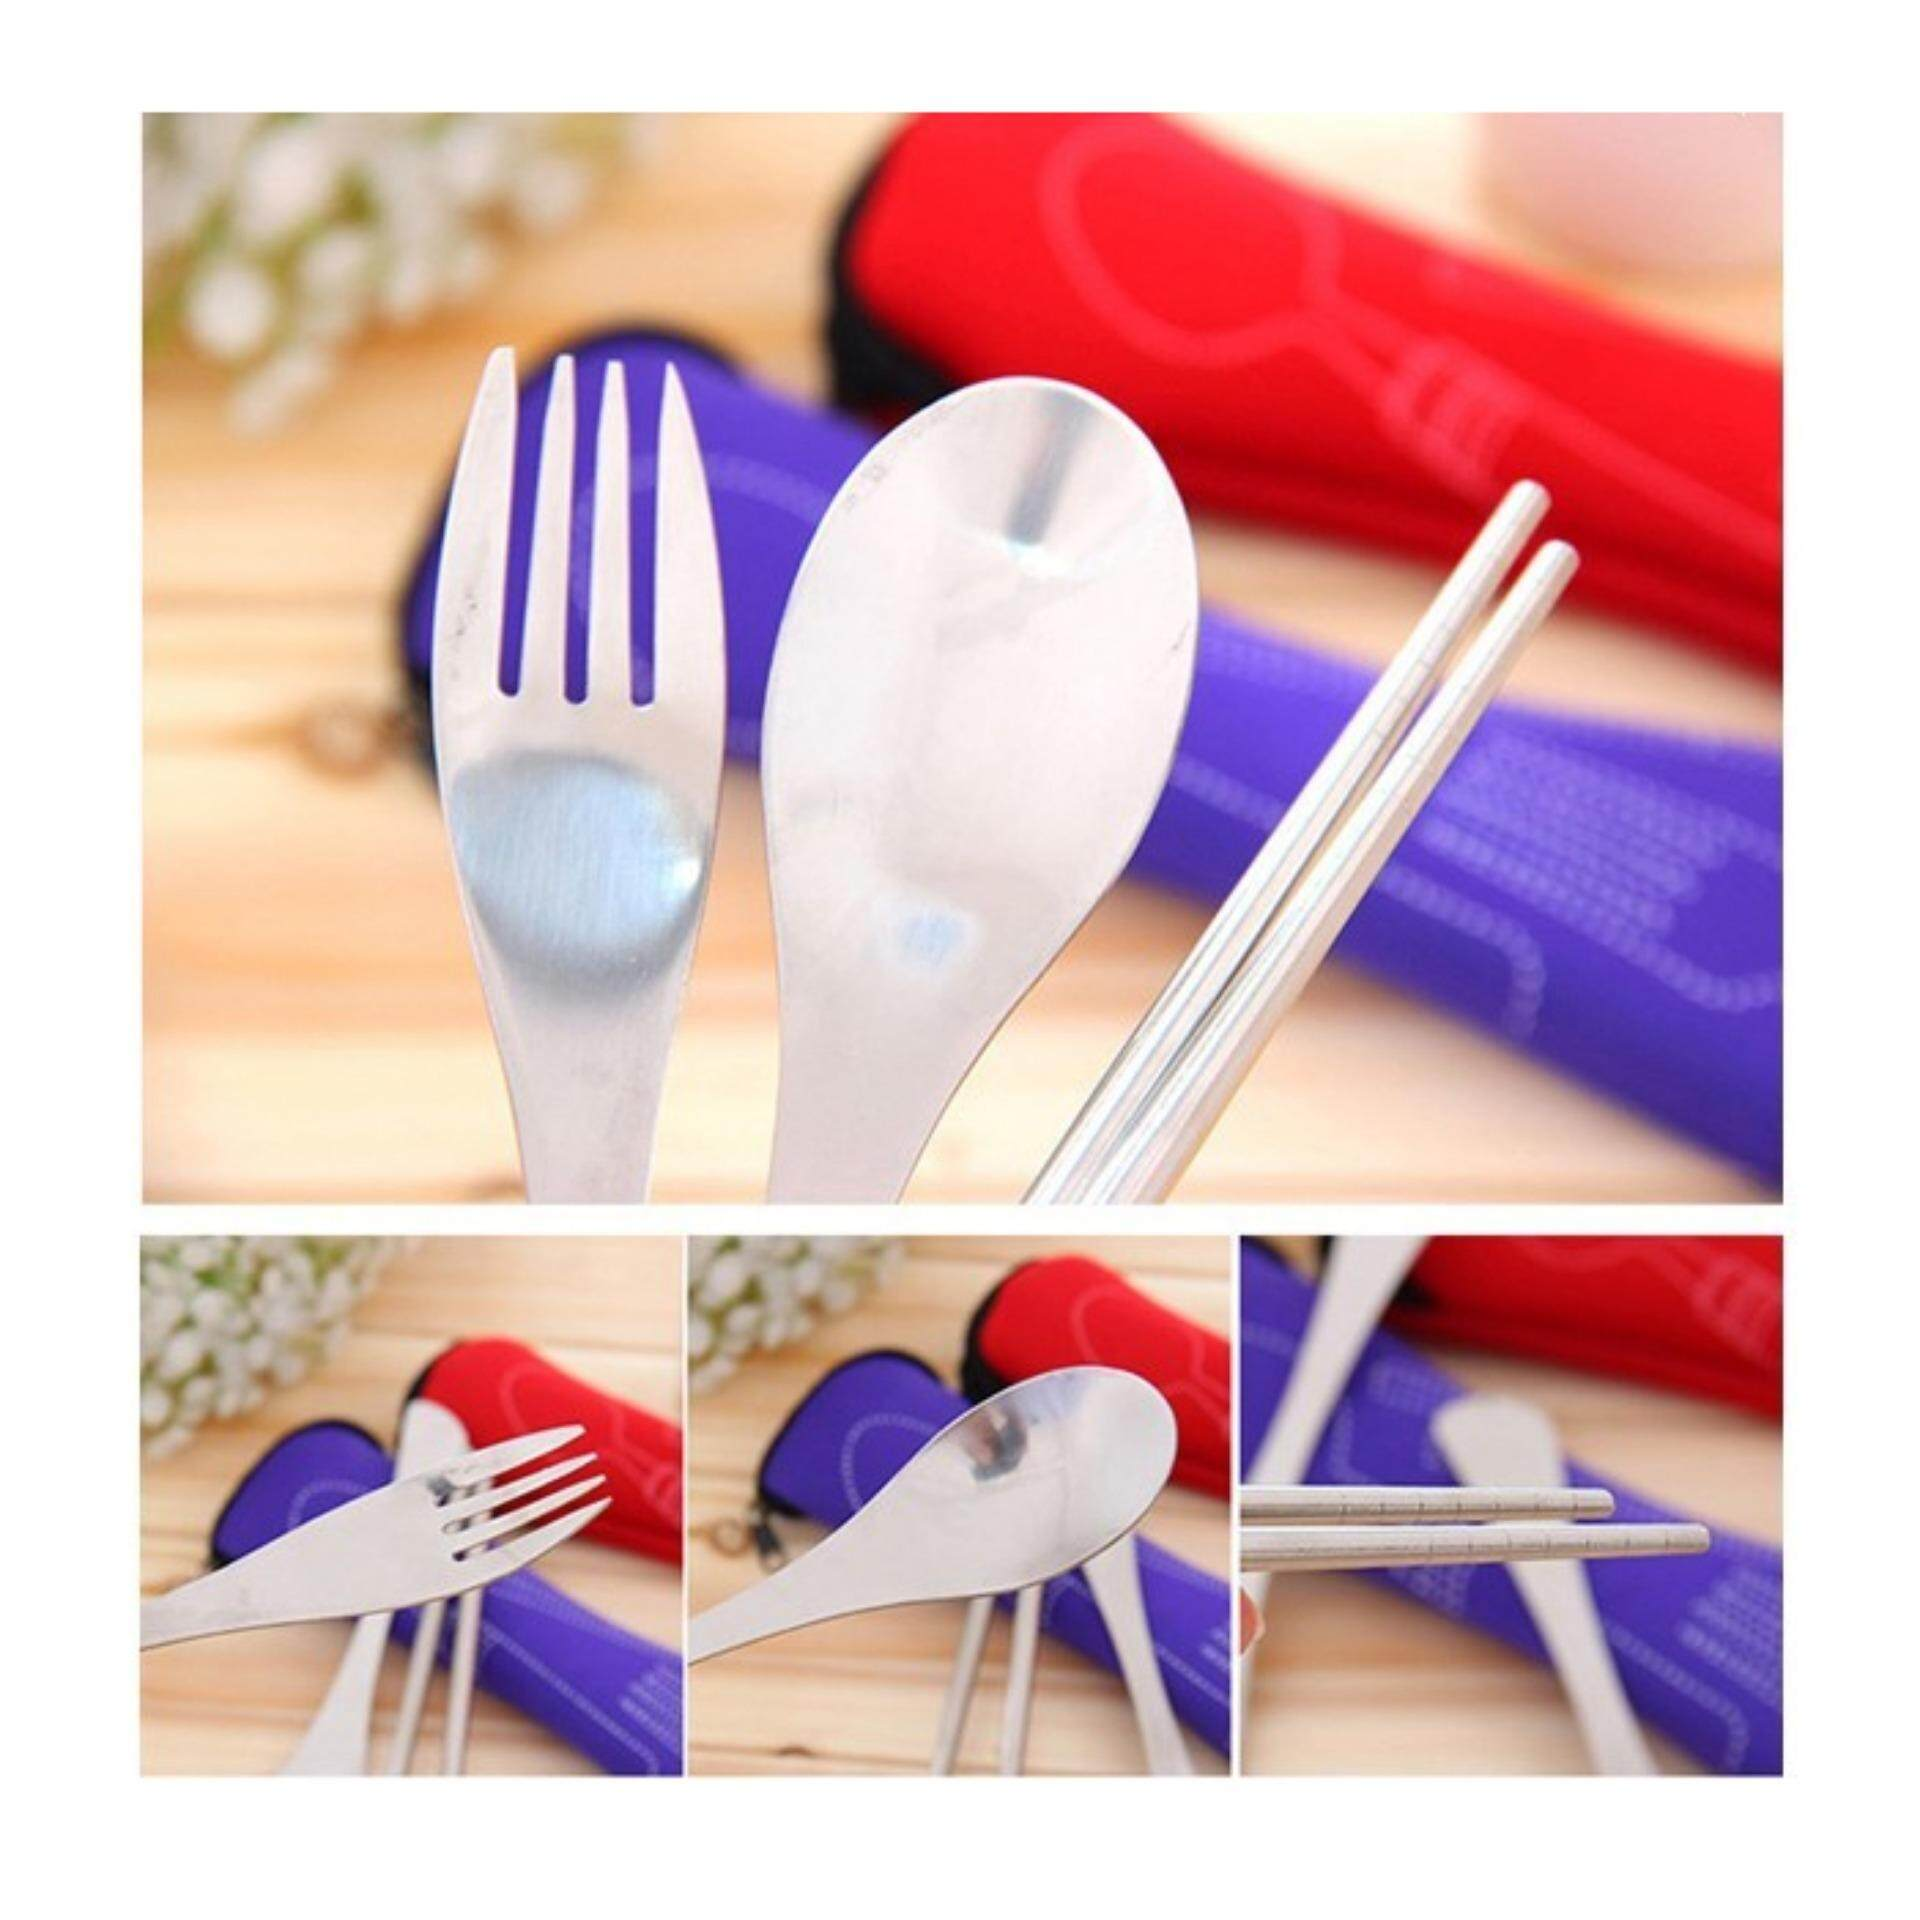 3-piece Portable Stainless Steel Cutlery Set (Outdoor/Outstation/Picnic) - 1 set - Random Color Send